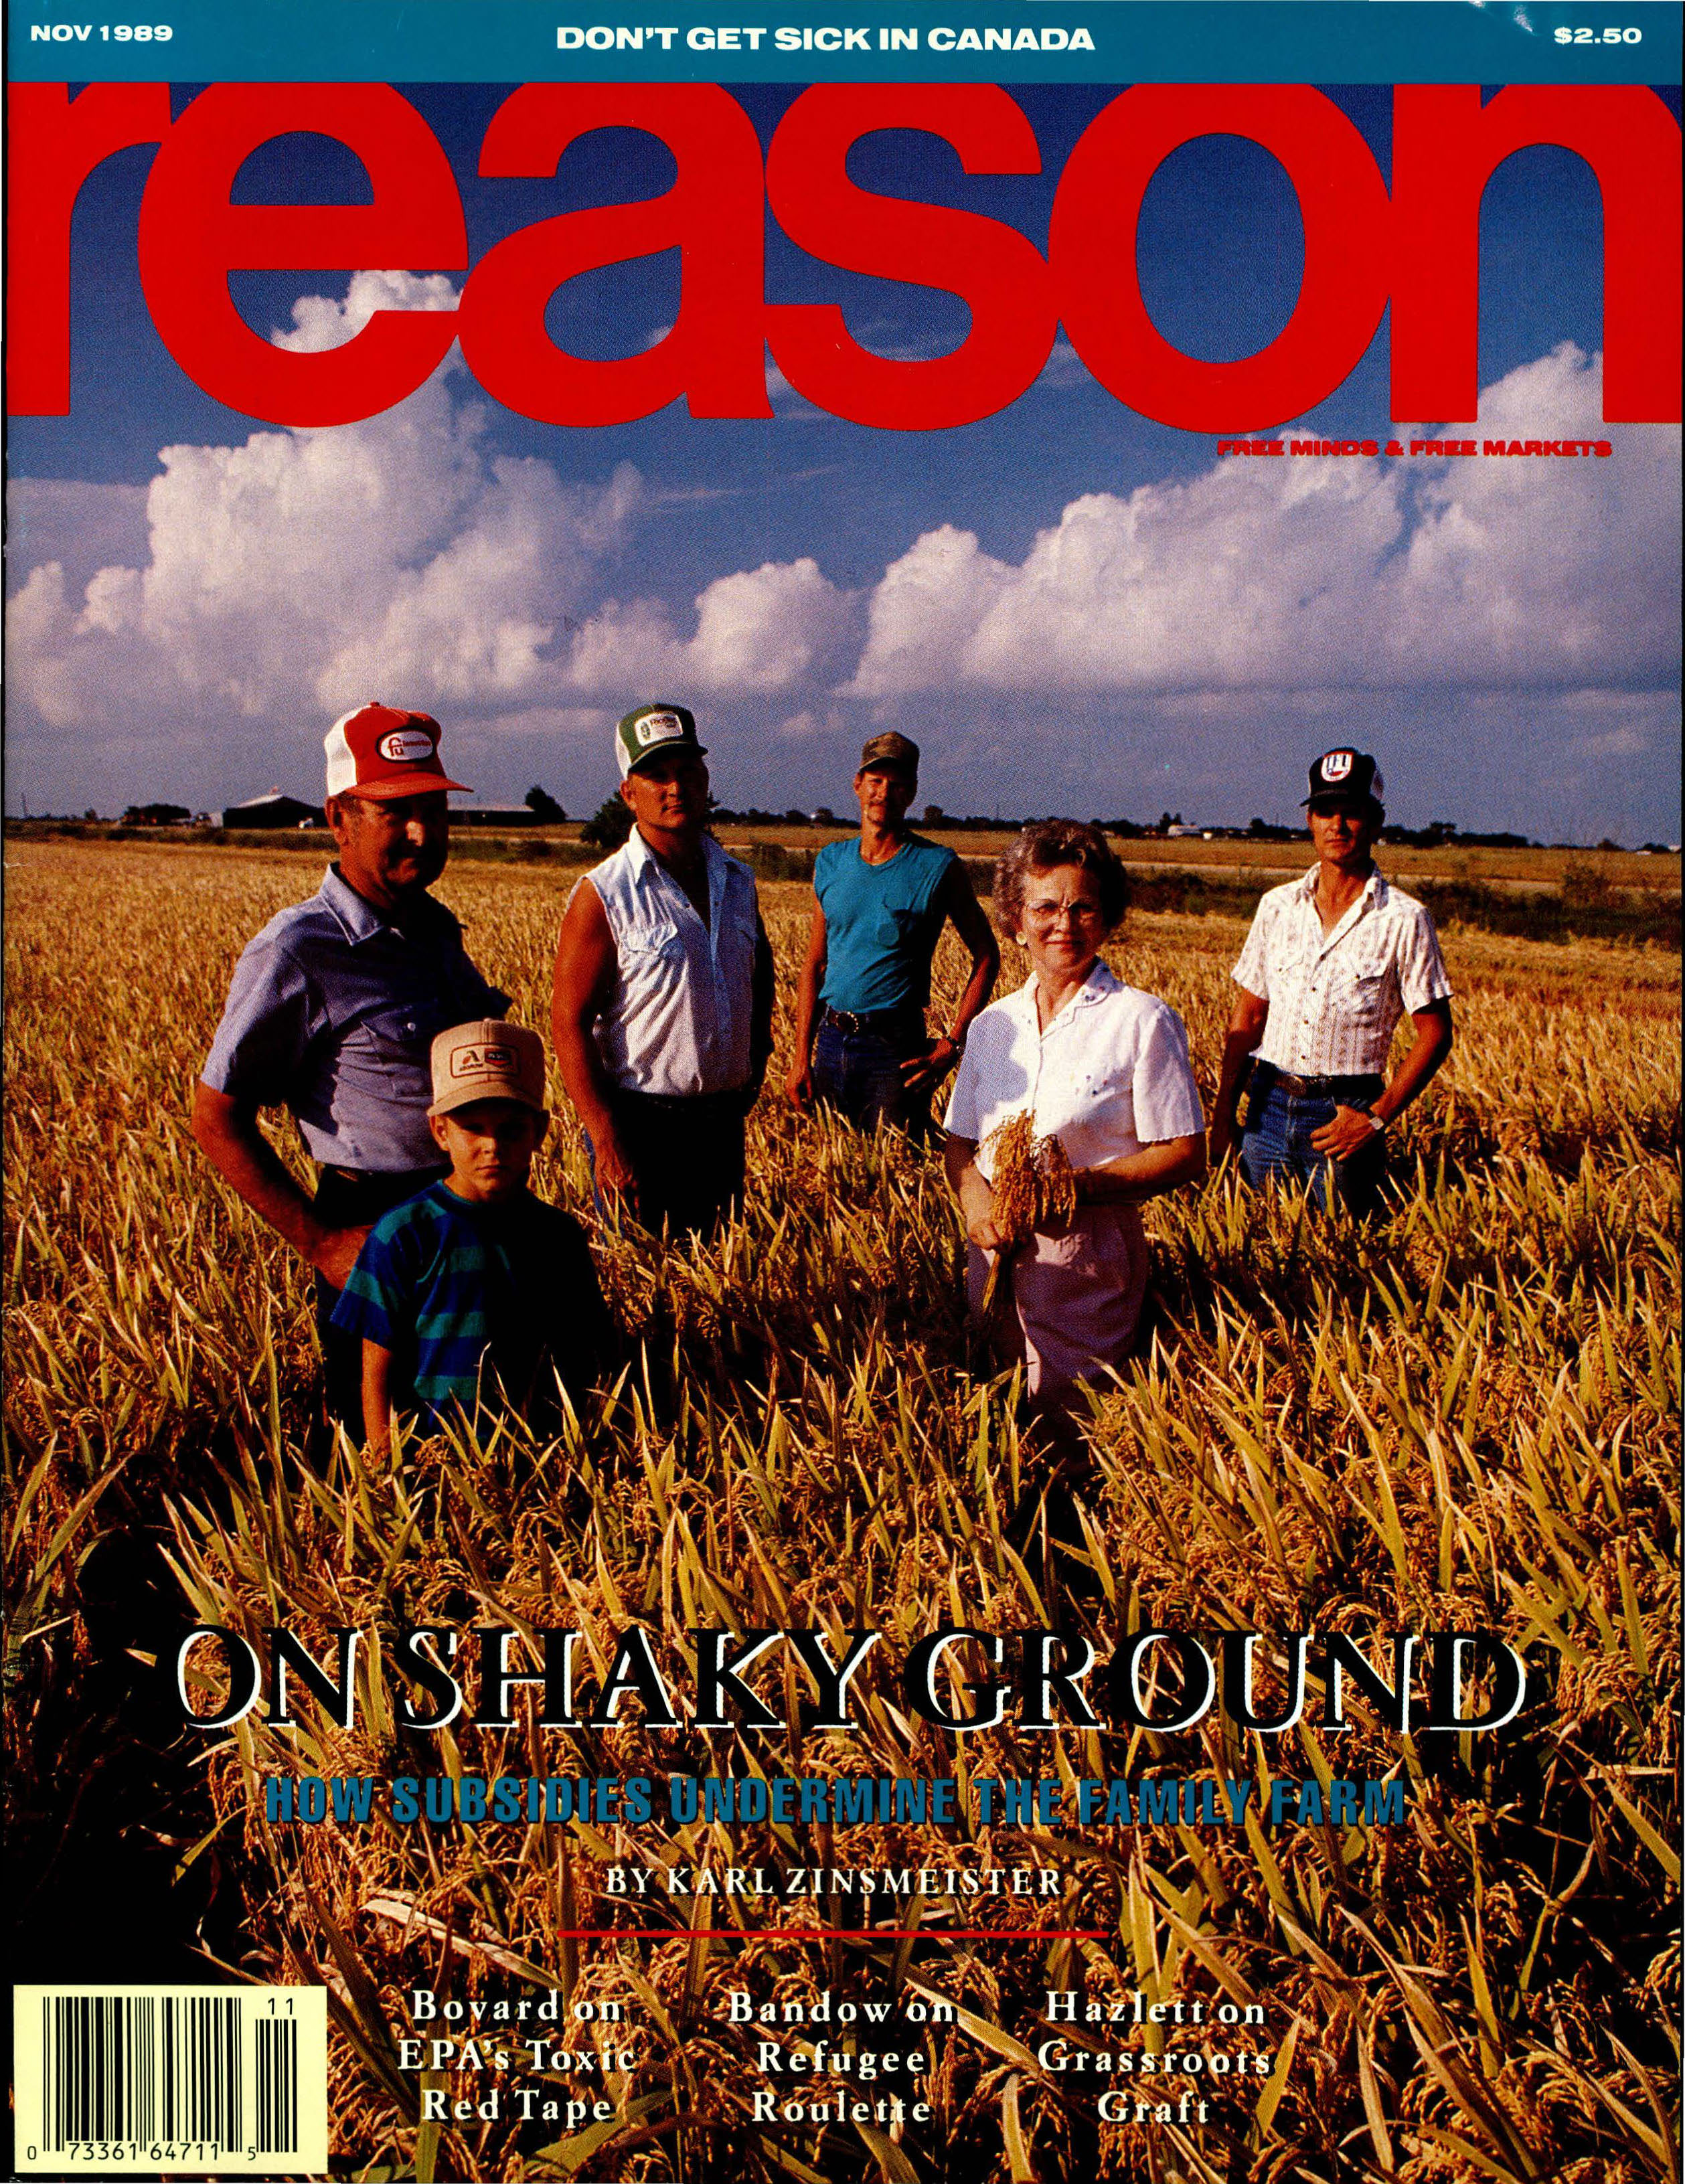 Reason Magazine, November 1989 cover image